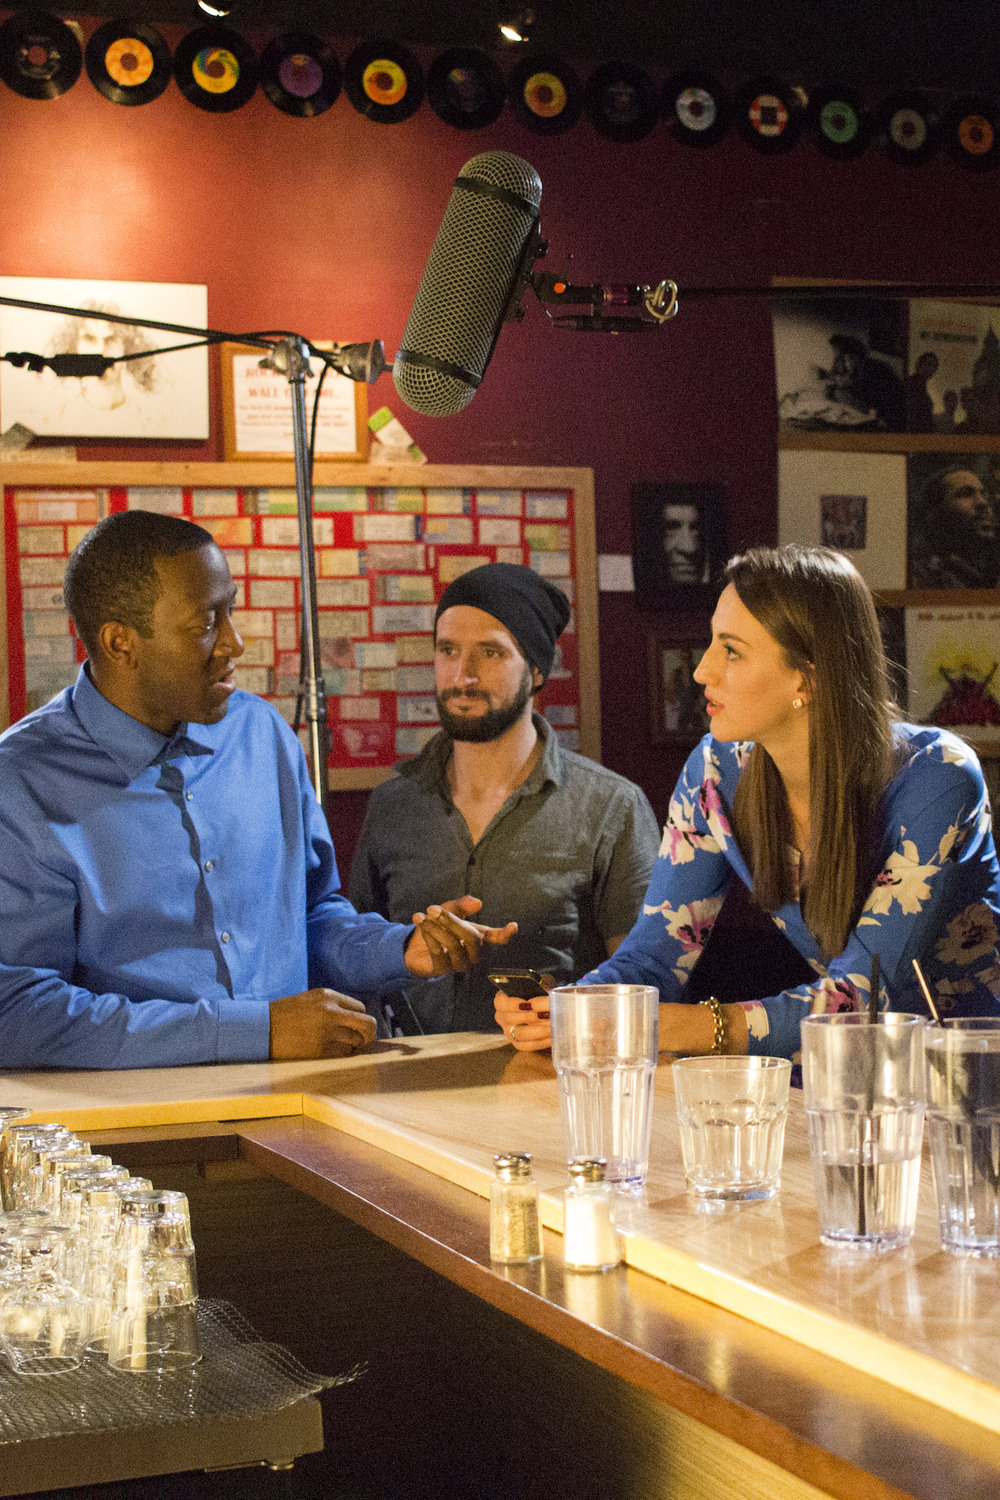 Actors Jamaal Eversley and Samantha Webb with Assistant Camera Dylan Kiely on the set of Geena Matuson's production of 'Fauxmercials' bar ads, September 2016.